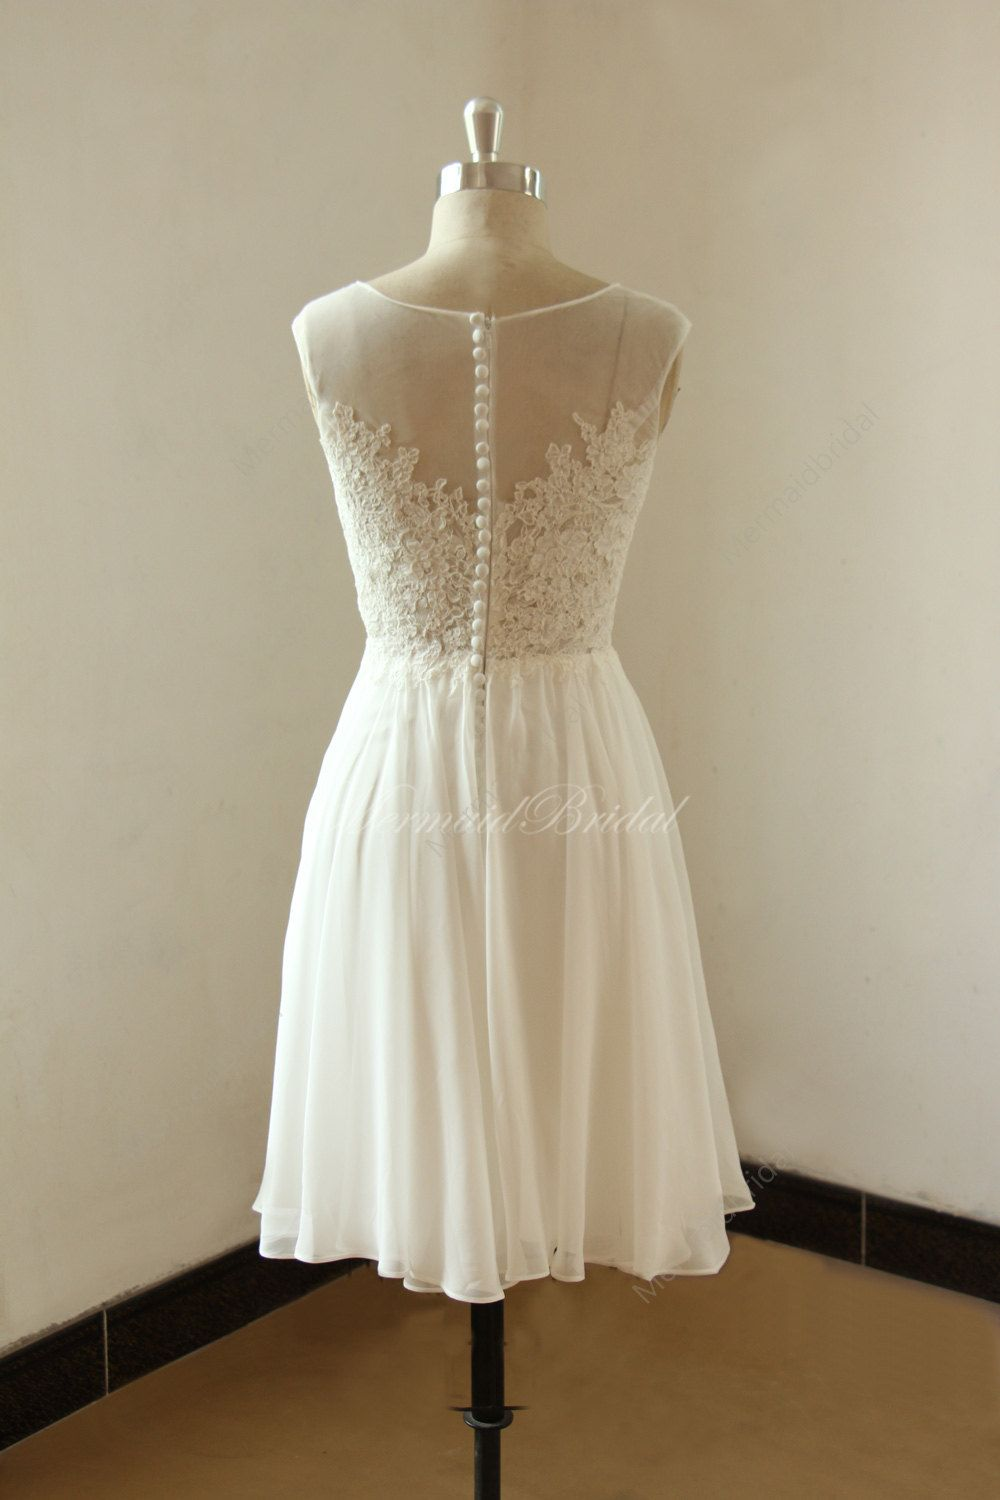 Ivory short knee length lace chiffon wedding dress with illusion